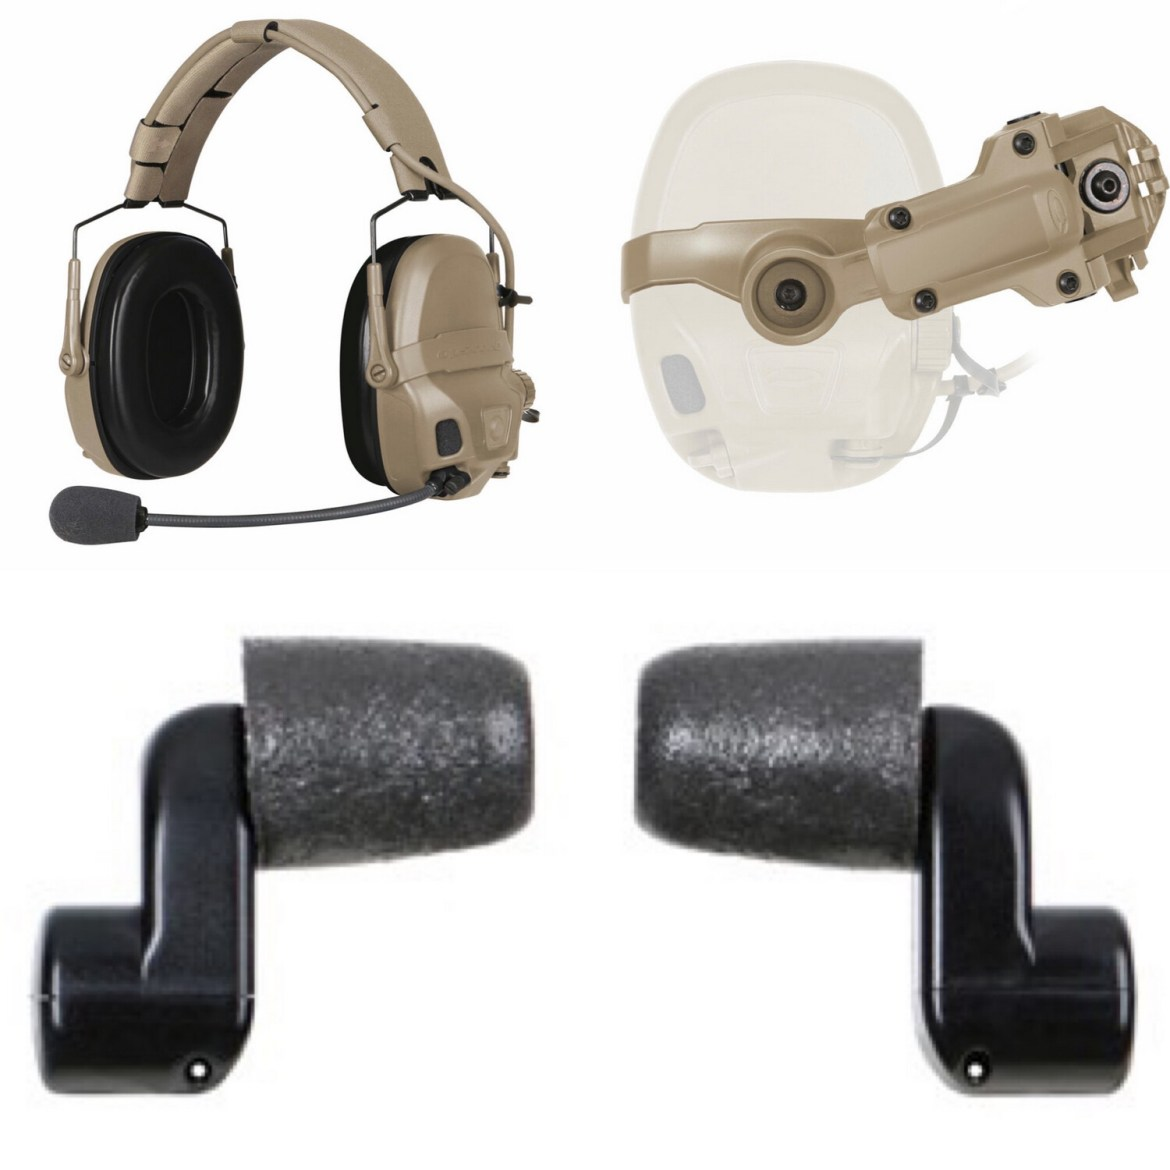 OPS-CORE AMP COMMUNICATION HEADSET - CONNECTORIZED Kit